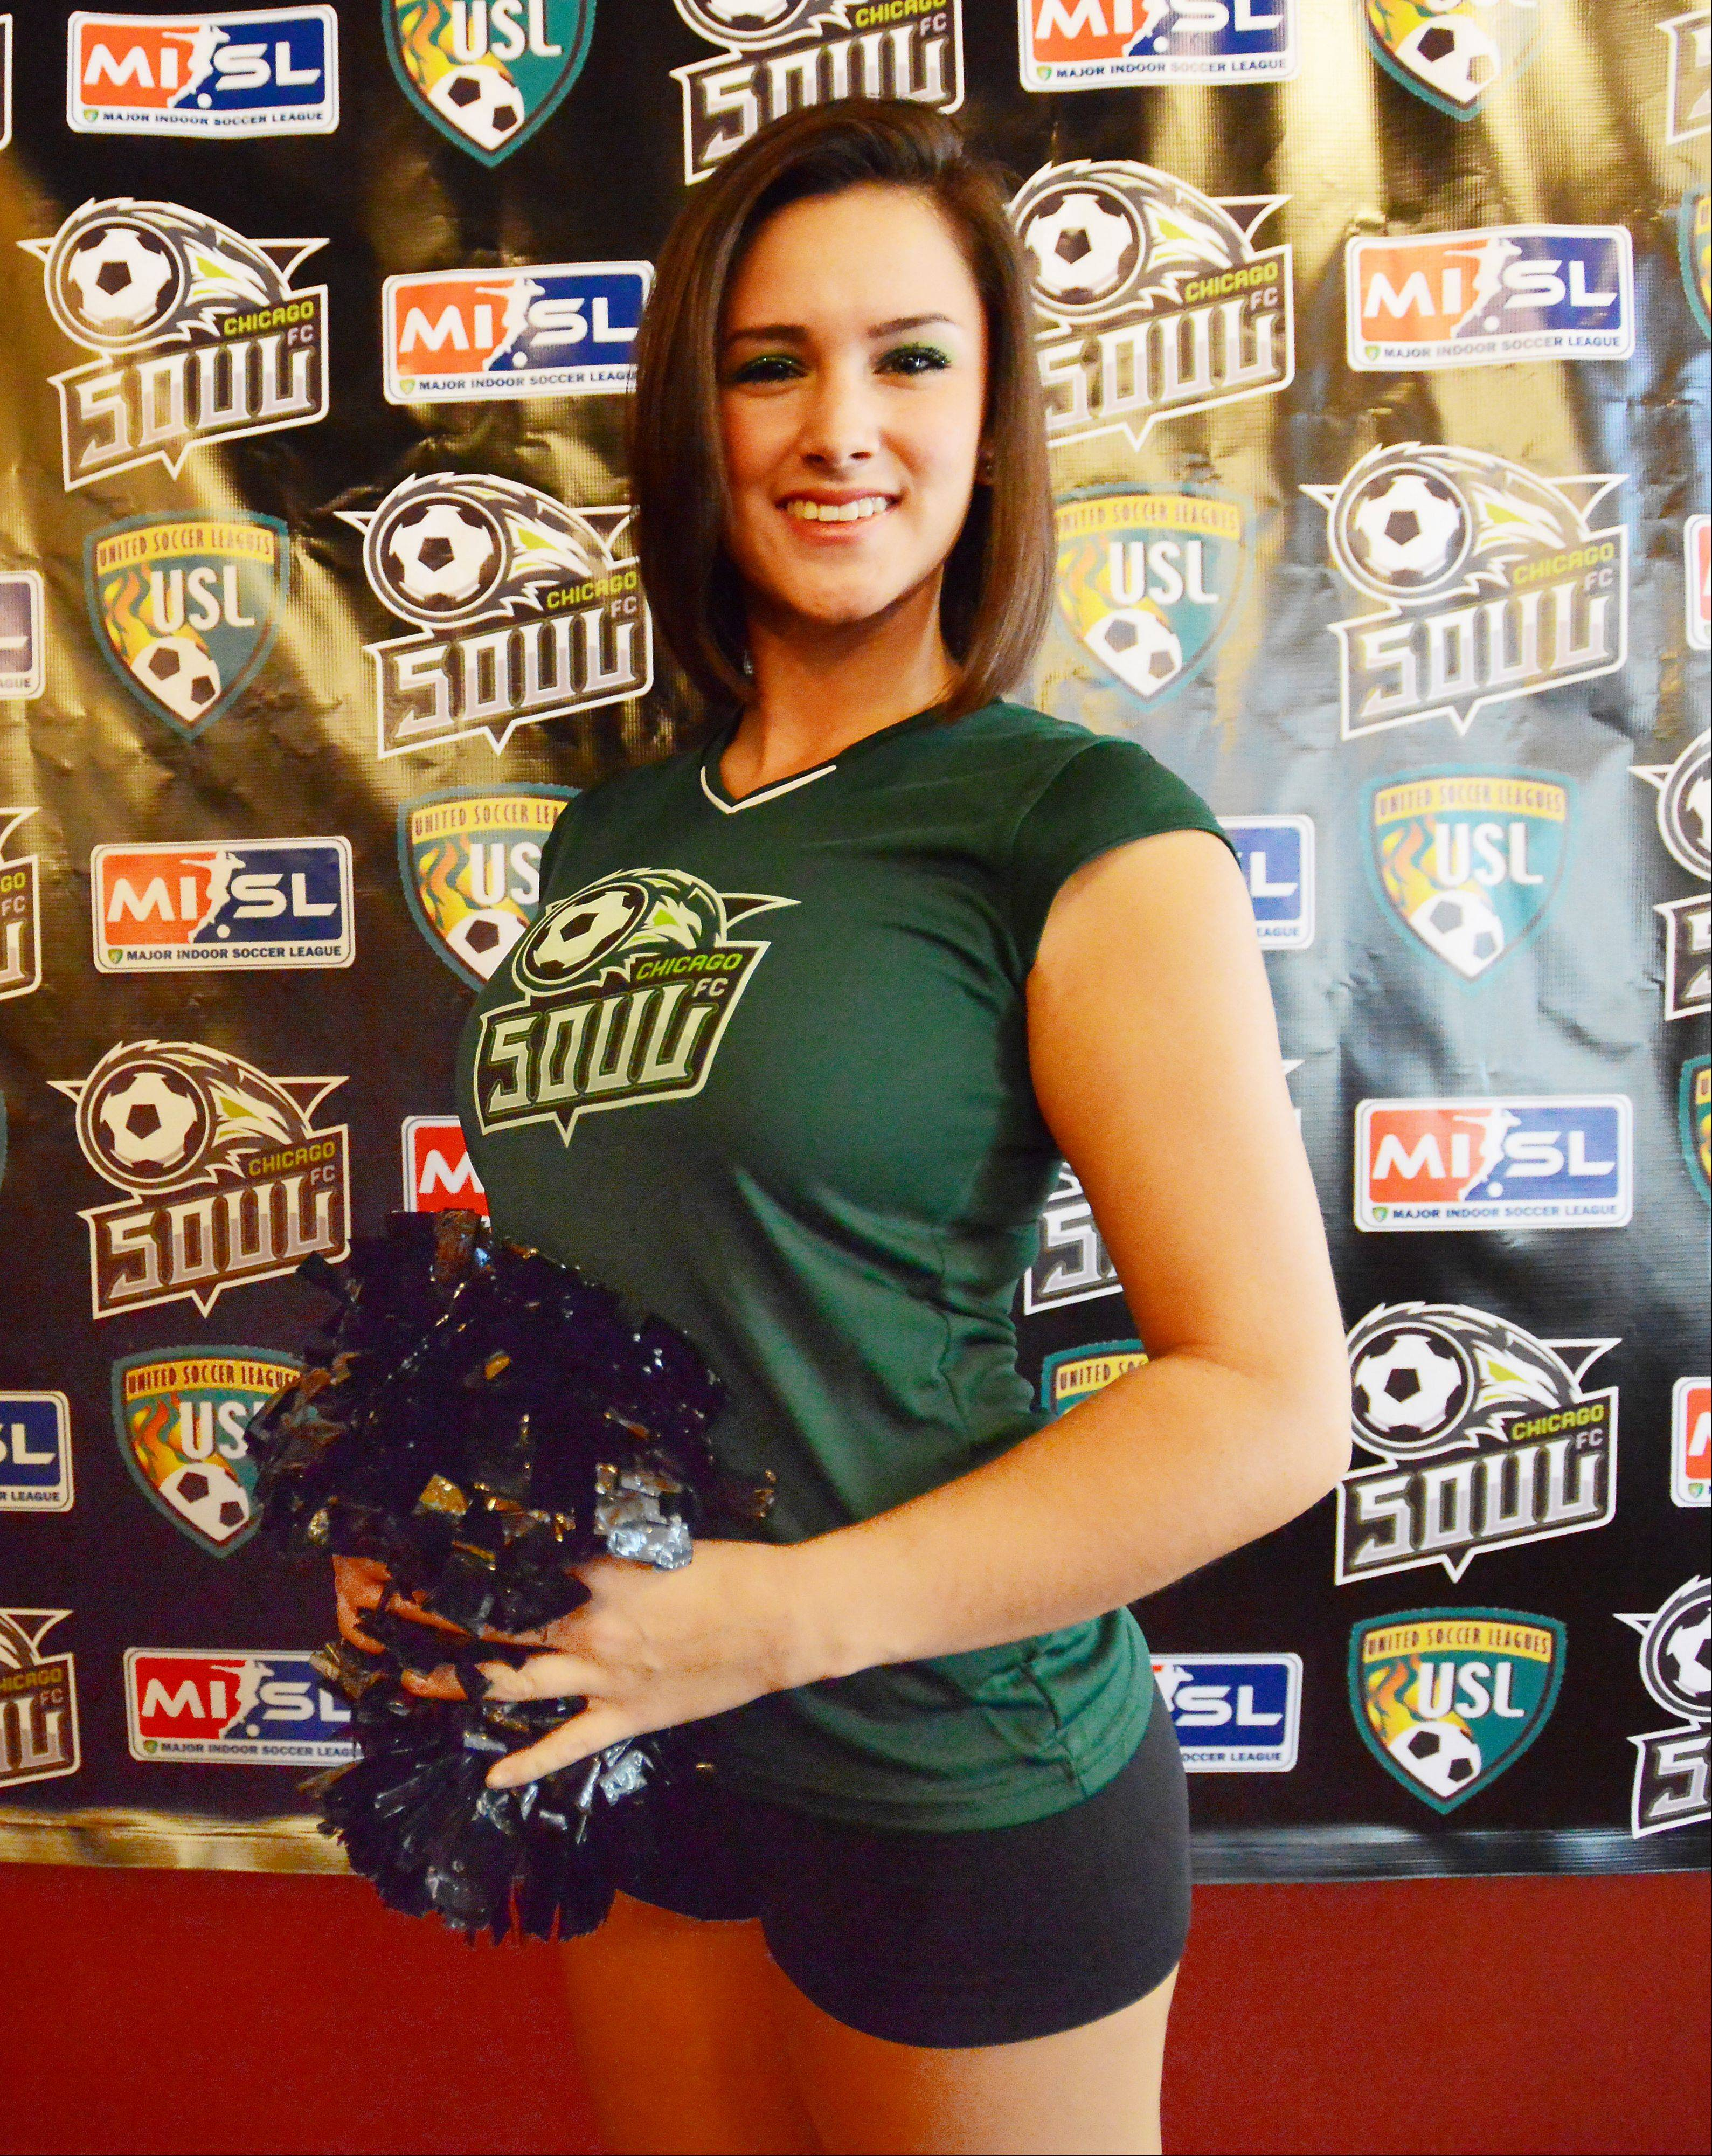 Chicago Soul cheerleader Jackie Sheppard, 23, of Orland Park was introduced at a news conference at Game Works in Schaumburg on Tuesday along with the player for their home opener on December 7th playing at the Sears Centre in Hoffman Estates.